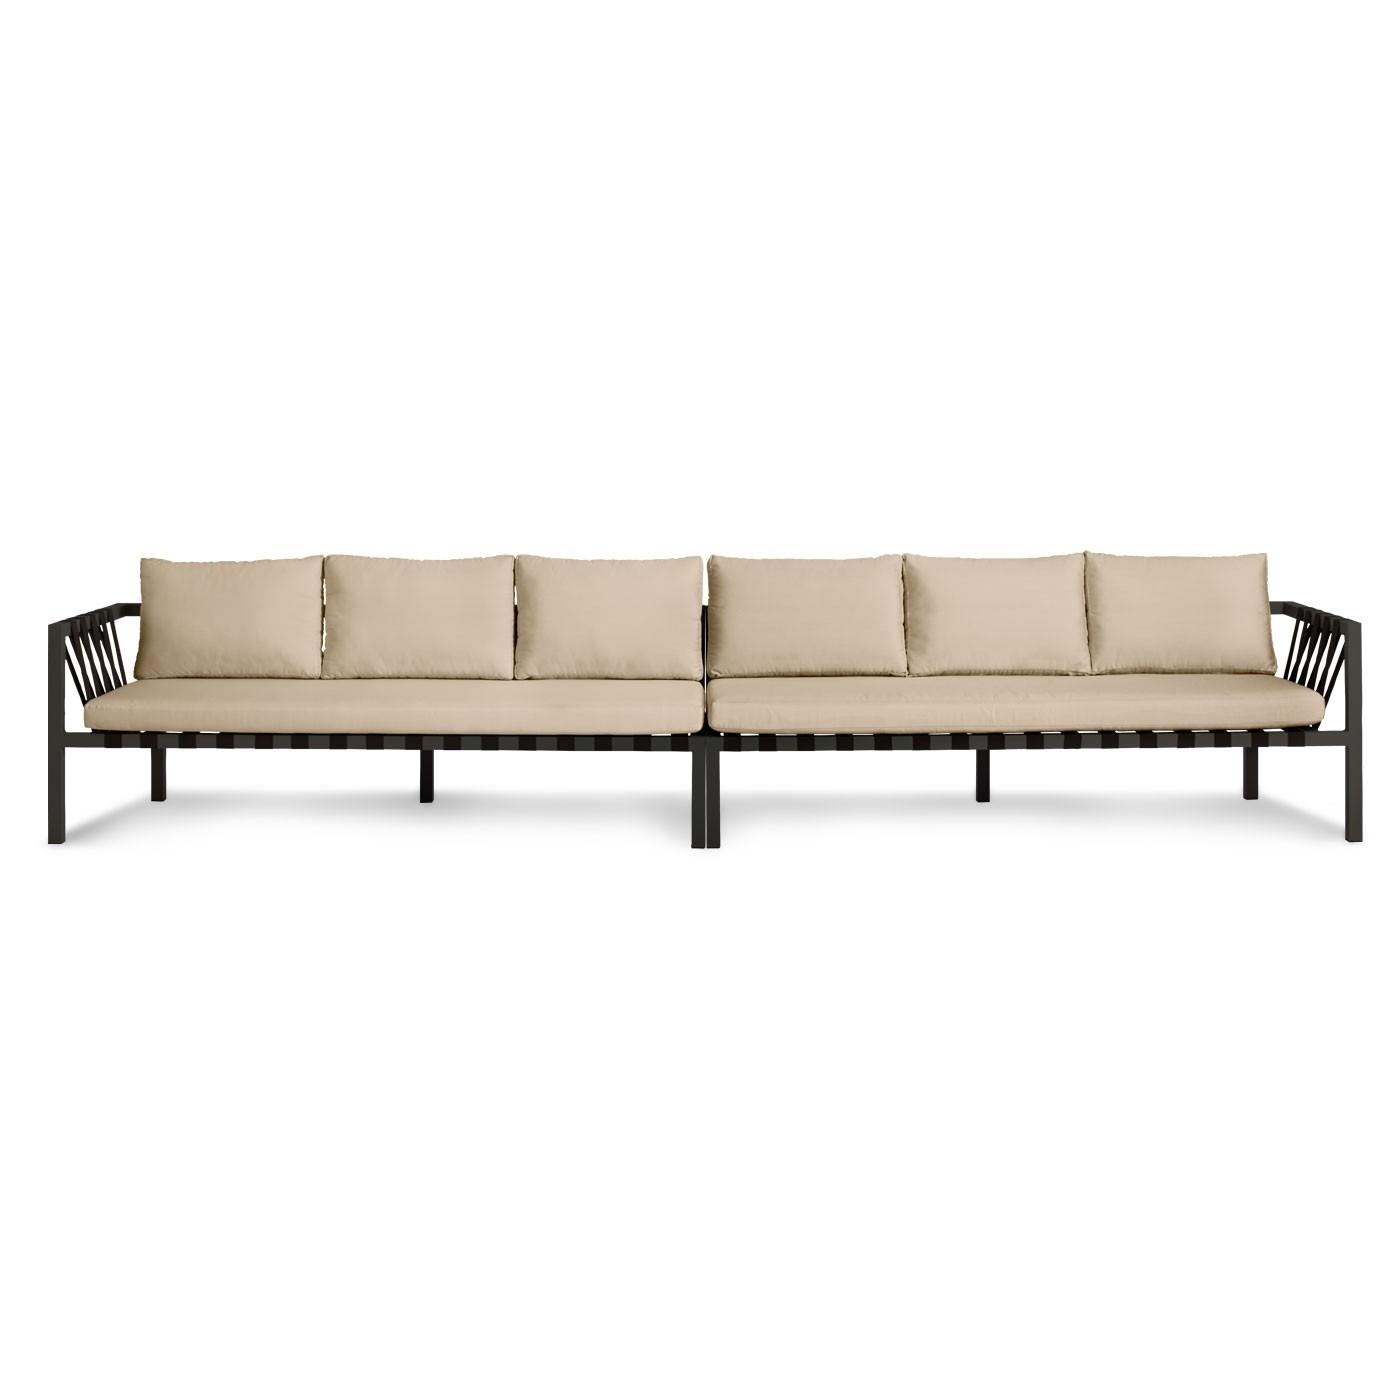 Modern Outdoor Furniture Modern Furniture Blu Dot 20 Best Collection Of Long Sectional Sofa With Chaise